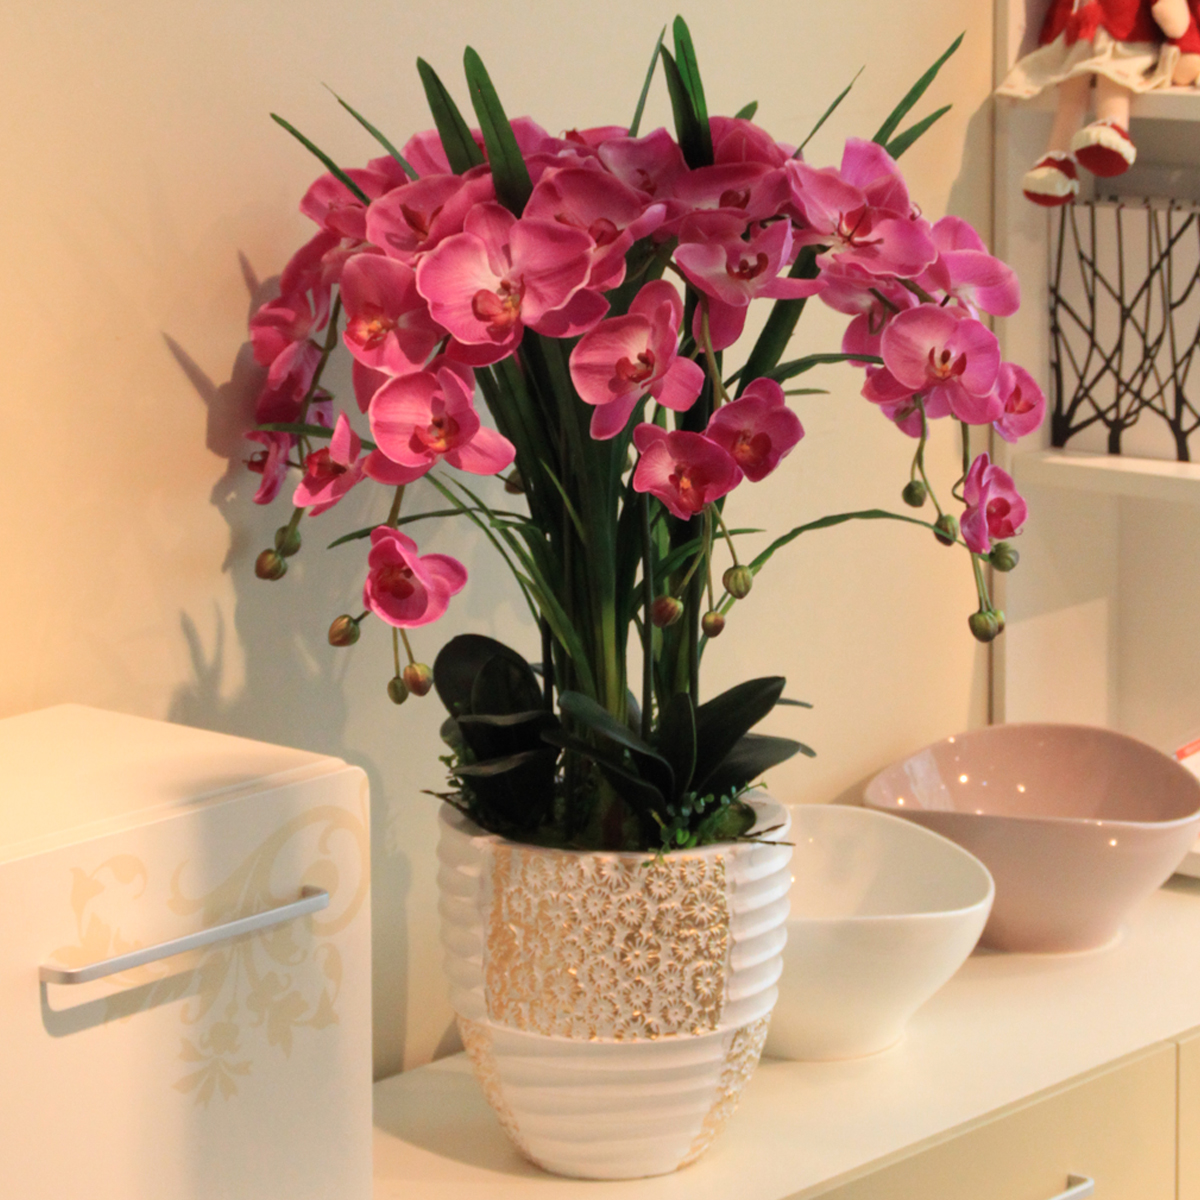 Artificial-Flower-Phalaenopsis-Bowyer-Set-Home-Decoration-Flower-French-font-b-Contact-b-font-First-Confirm